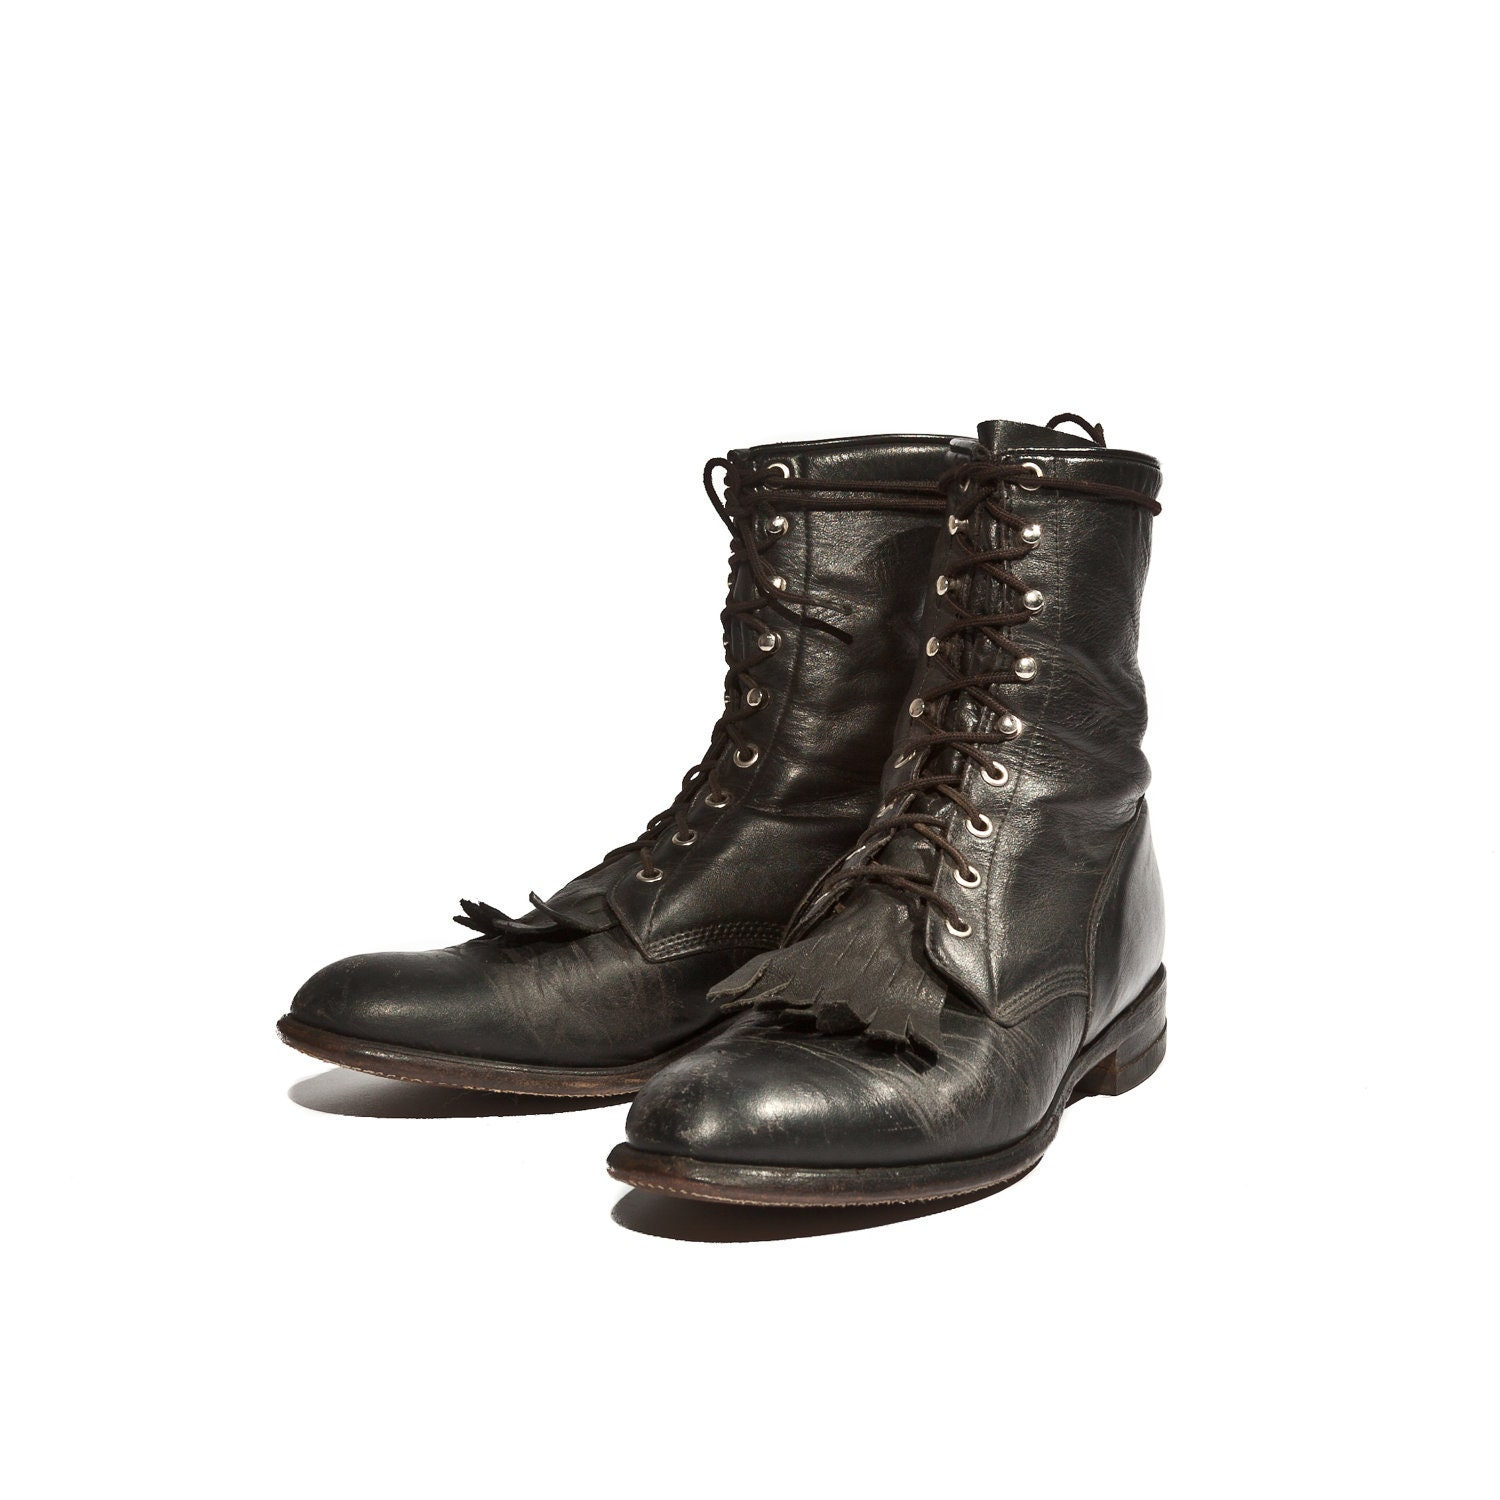 s justin roper boot in lace up black leather by